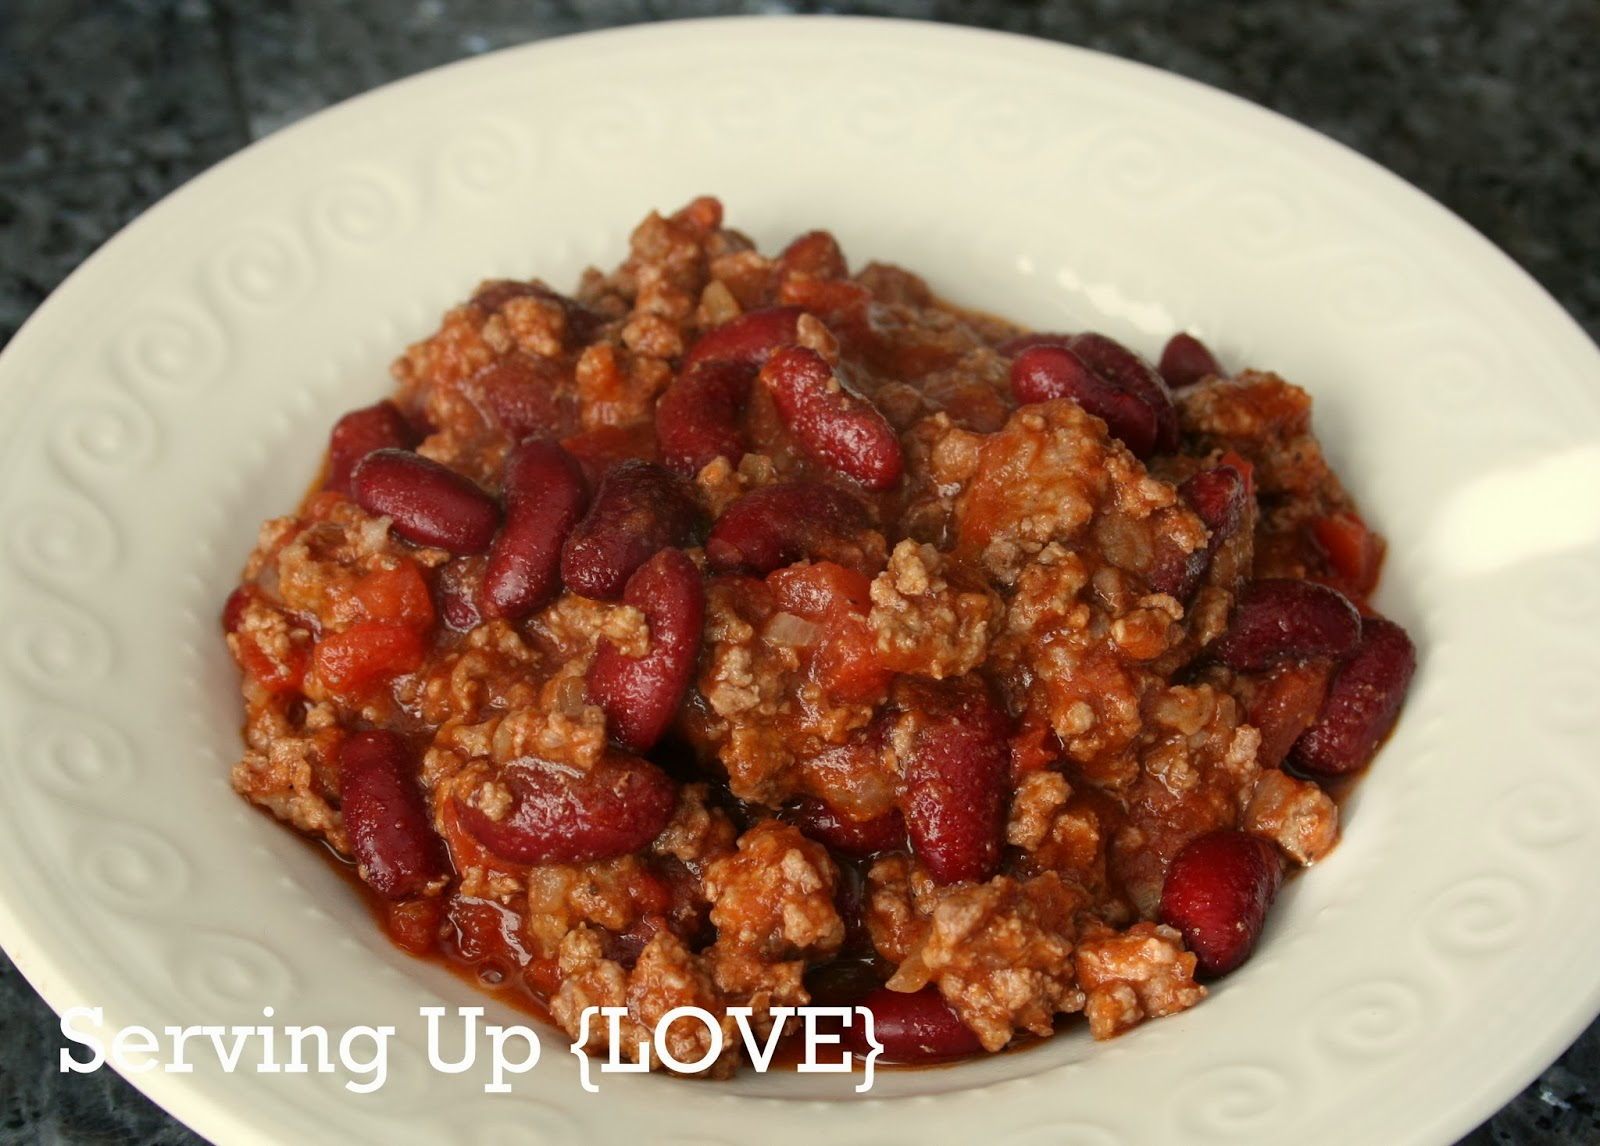 Katherine's Kitchen: Serving Up {Soup}: Beef & Red Bean Chili